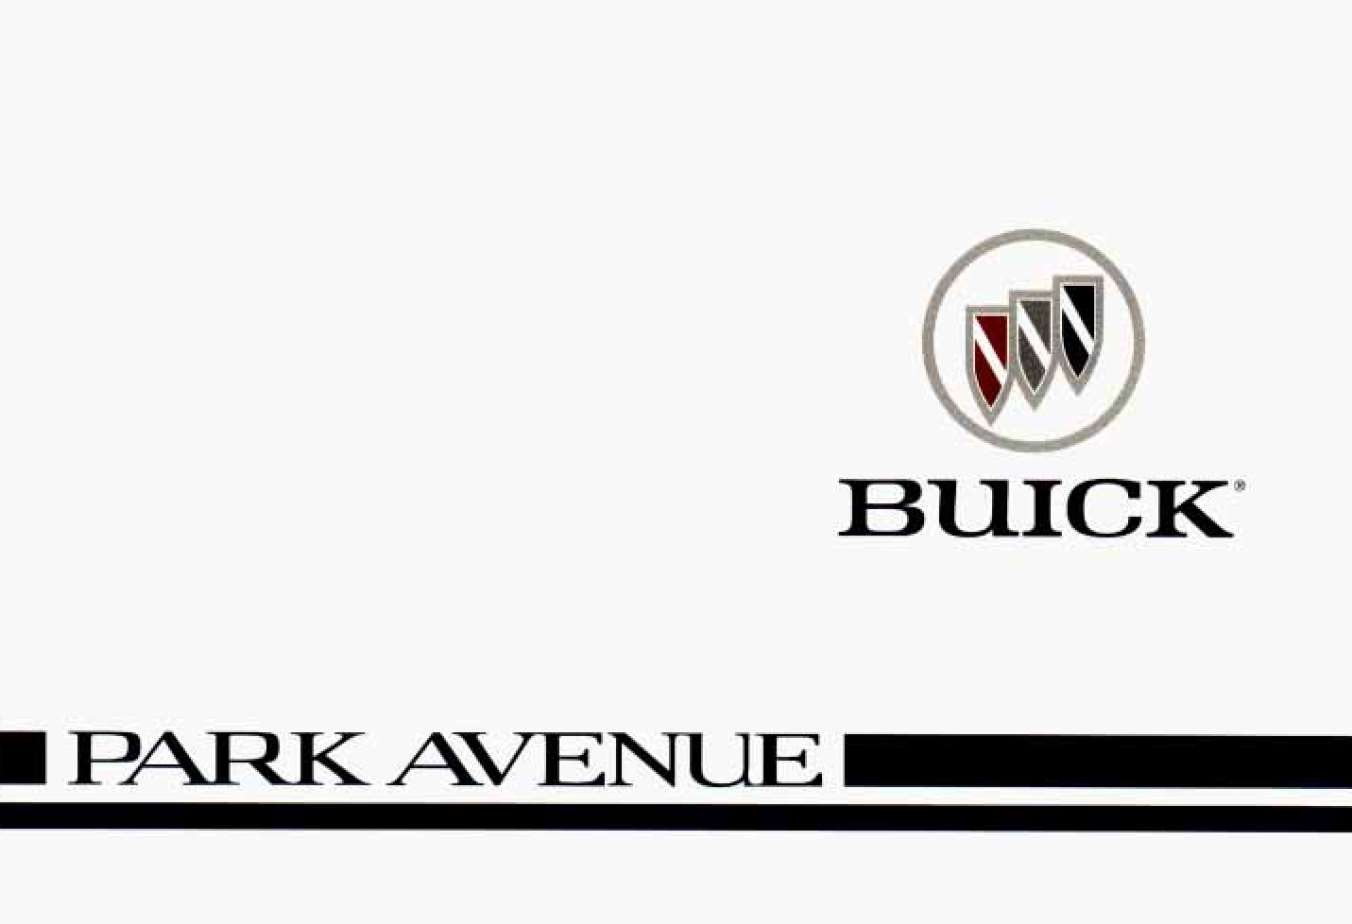 Buick Park Avenue 1996 Owner's Manual